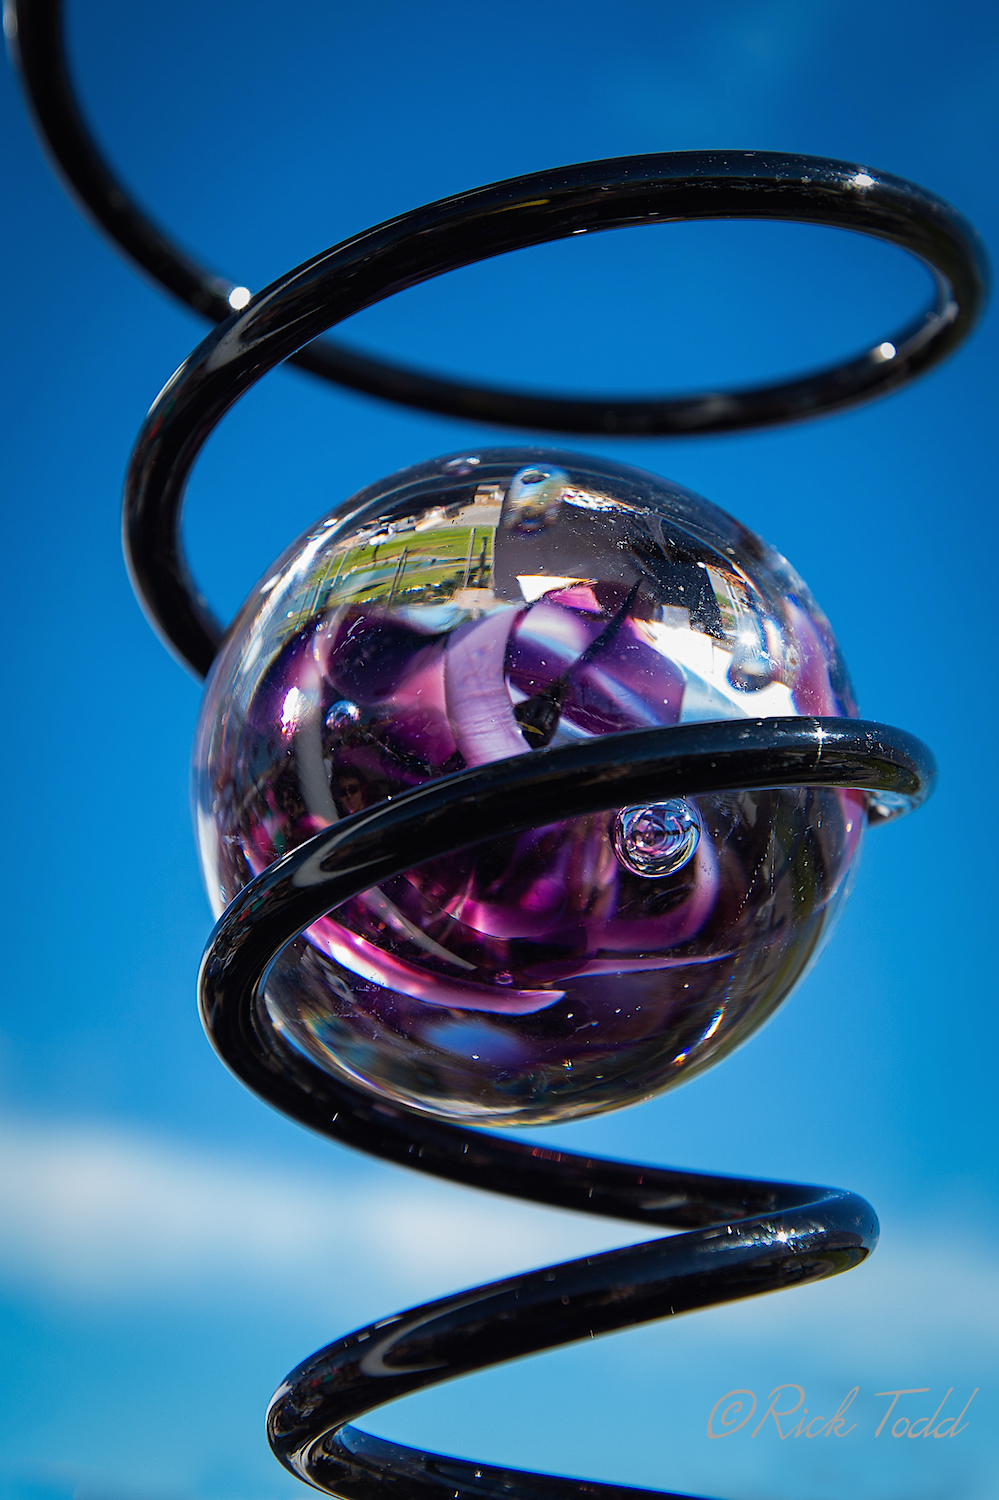 The glass blown ball is placed inside the spiral wire which is twisted by the wind.  An optical illusion is created suggesting that the ball moves and spins up and down the spiral.  Very cool.  I notice that Rick caught the reflection of the lake in the ball.  Good job!